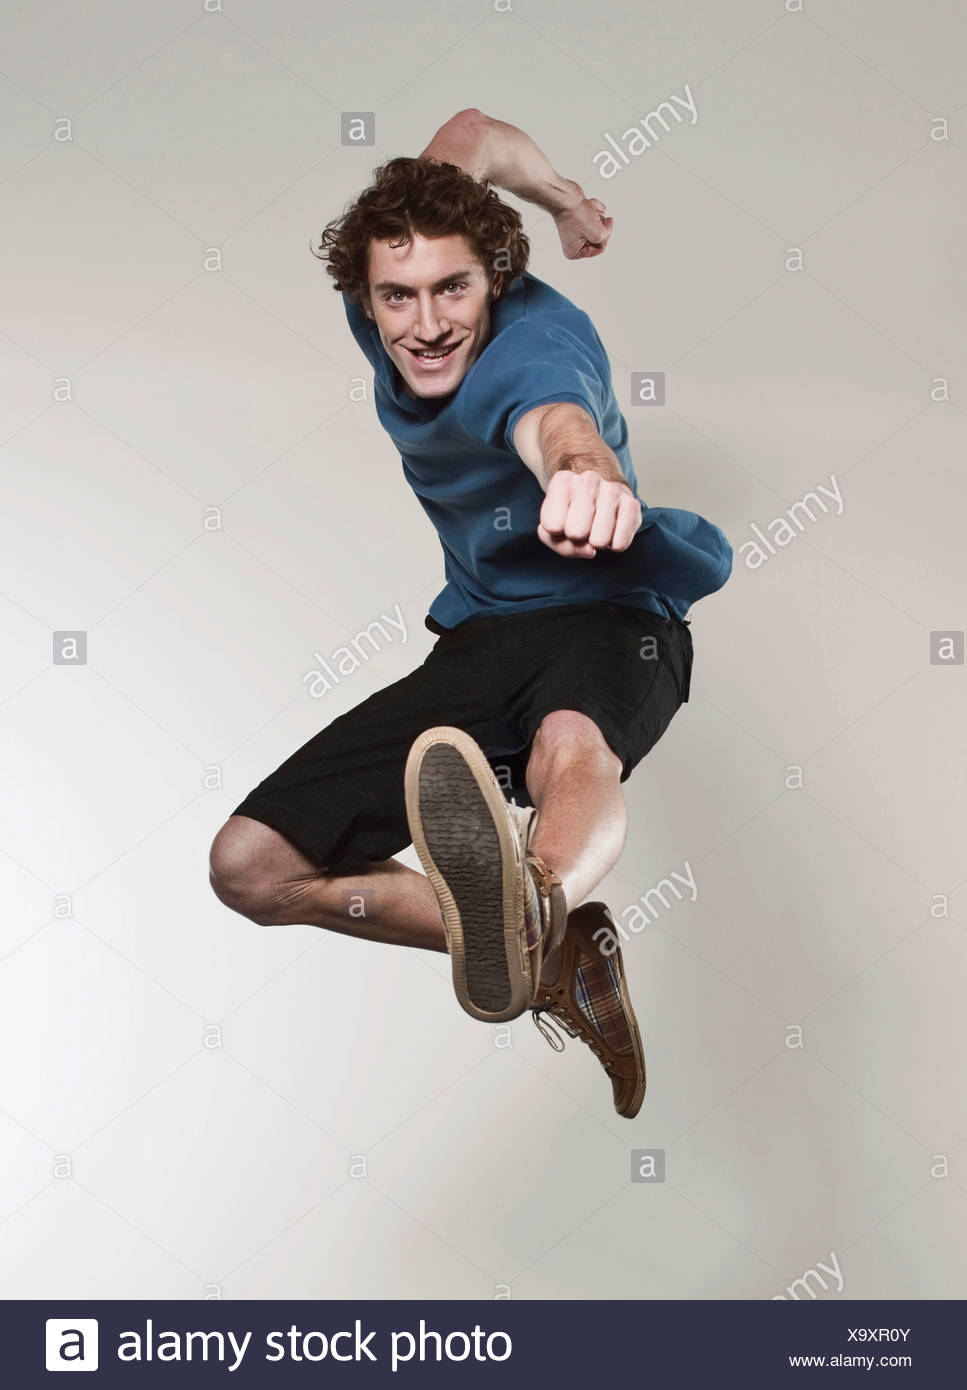 Man jumping and punching in air, smiling, portrait - Stock Image